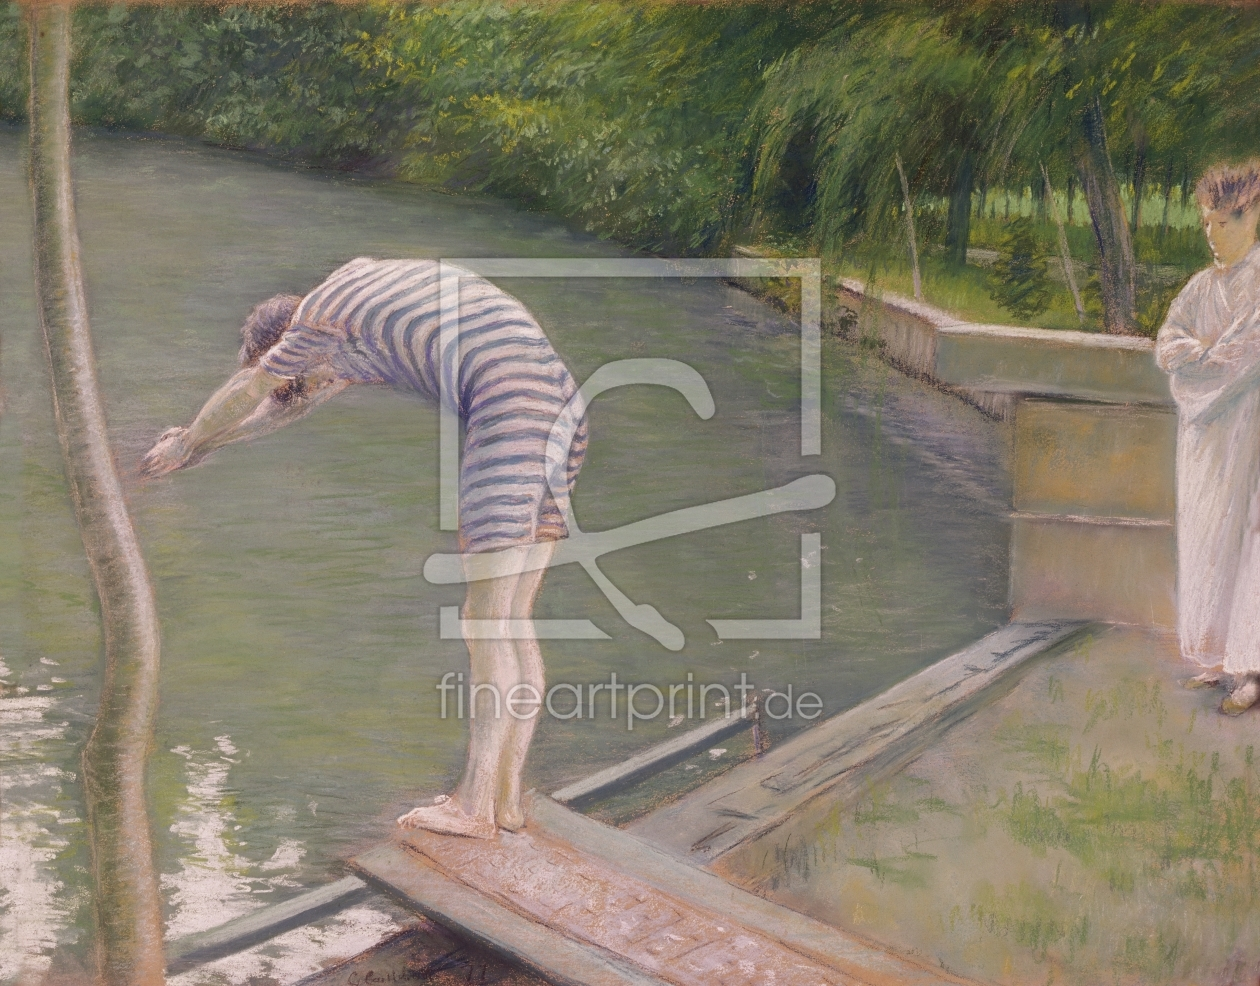 Bild-Nr.: 31002656 The Bather, or The Diver, 1877 erstellt von Caillebotte, Gustave